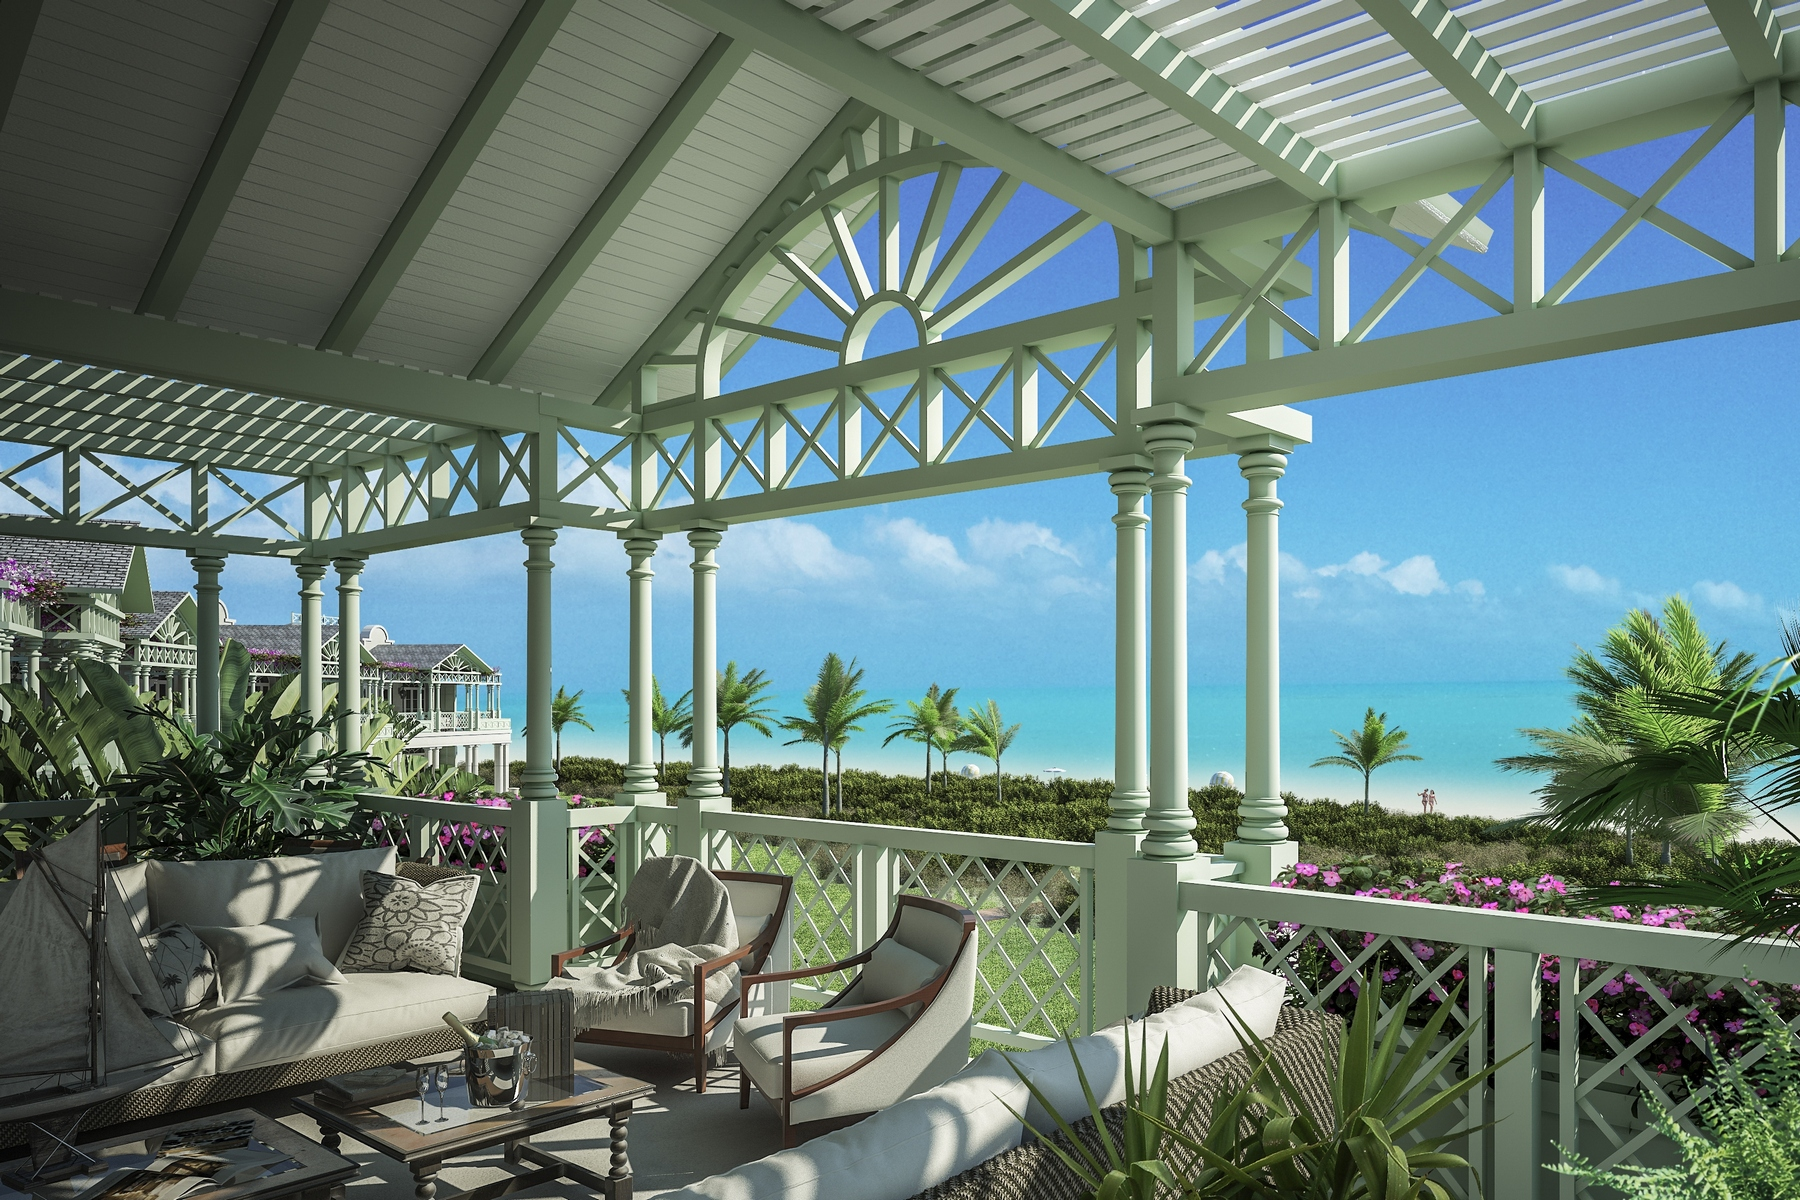 Single Family Home for Sale at The Shore Club ~ Villa 6 The Shore Club, Long Bay, Turks And Caicos Islands